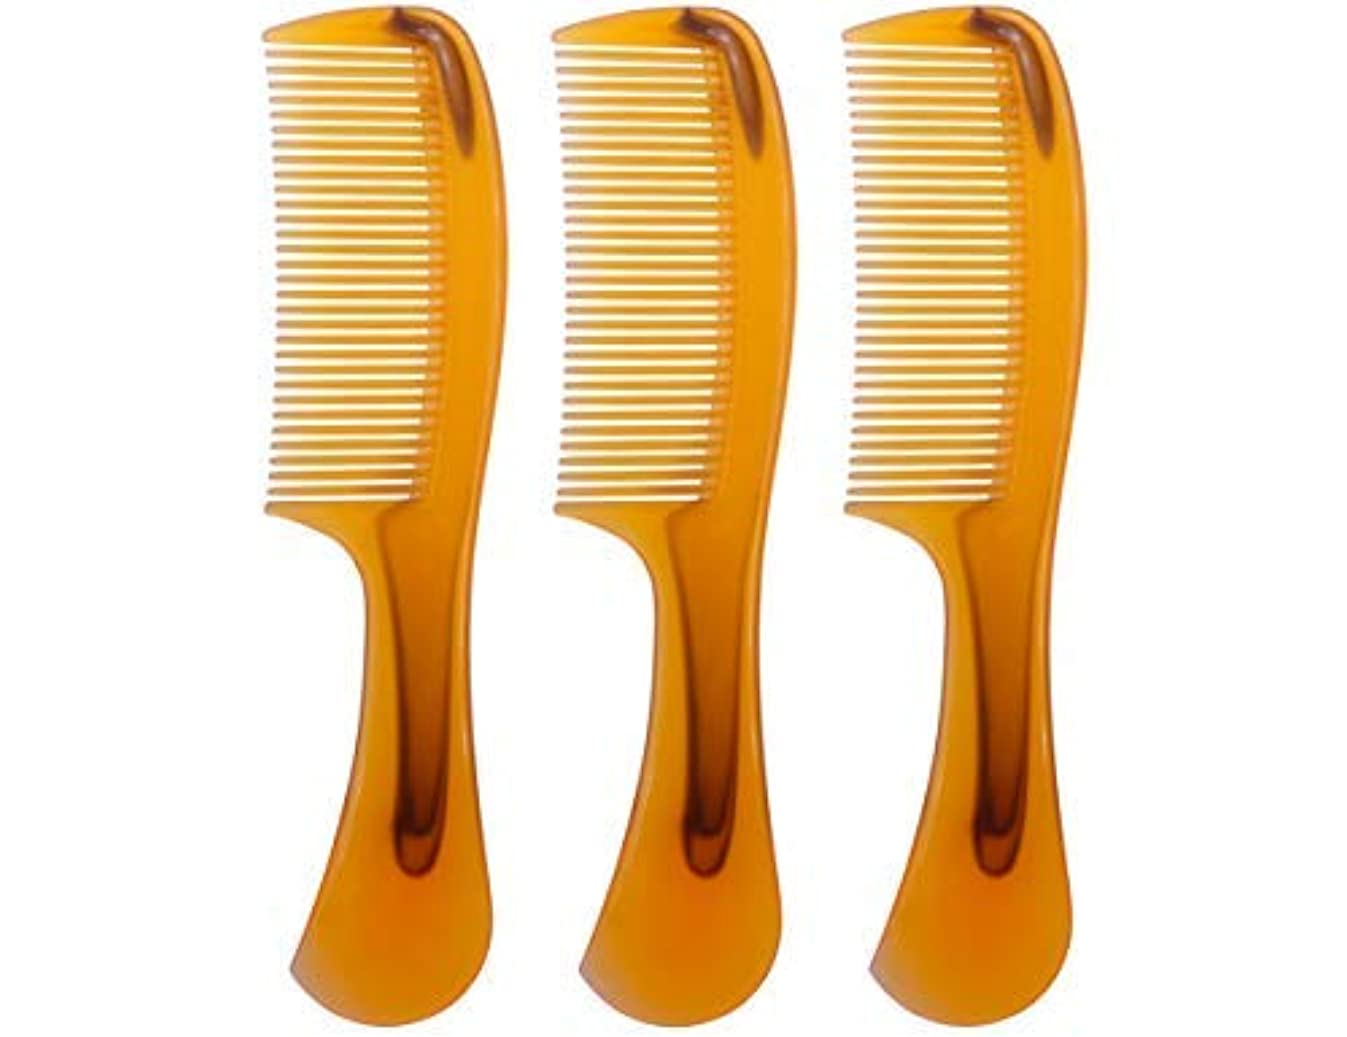 ファイアル関税罰LBY 3pcs 16 cm Hair Comb Round Handle Comb Hair Care Comb Plastic Yellow [並行輸入品]